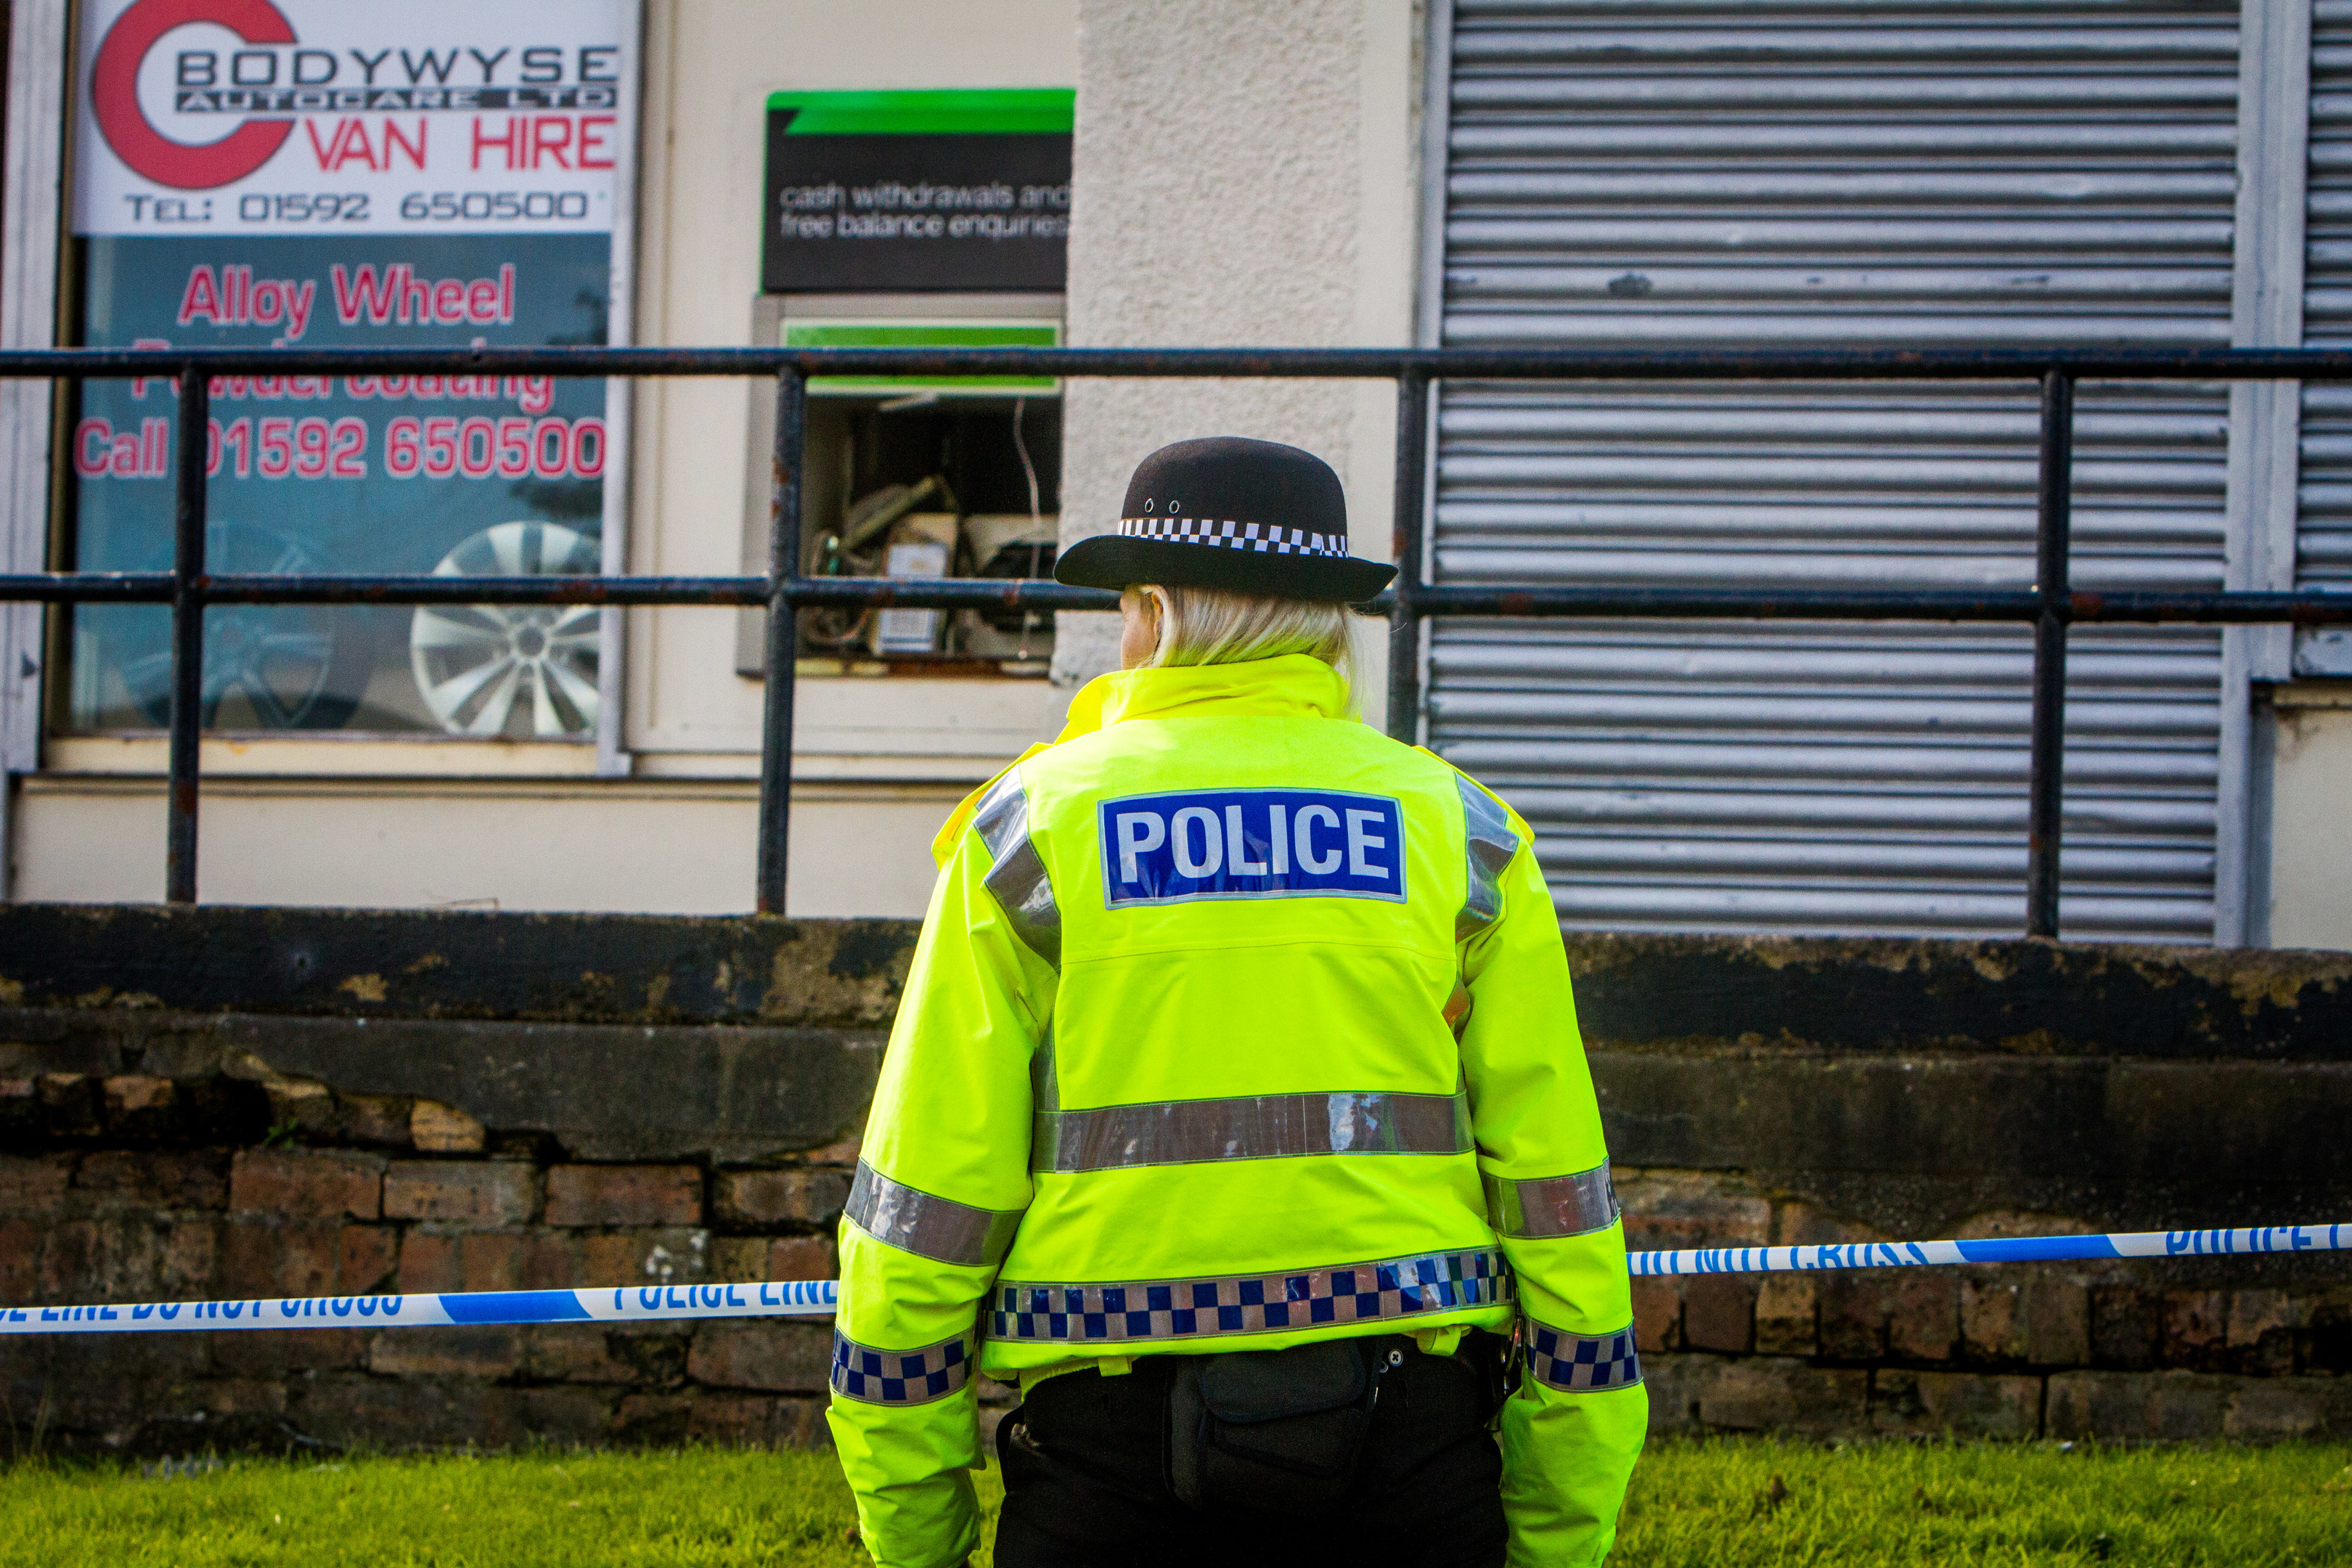 Police investigated the attempted robbery which took place in September 2017